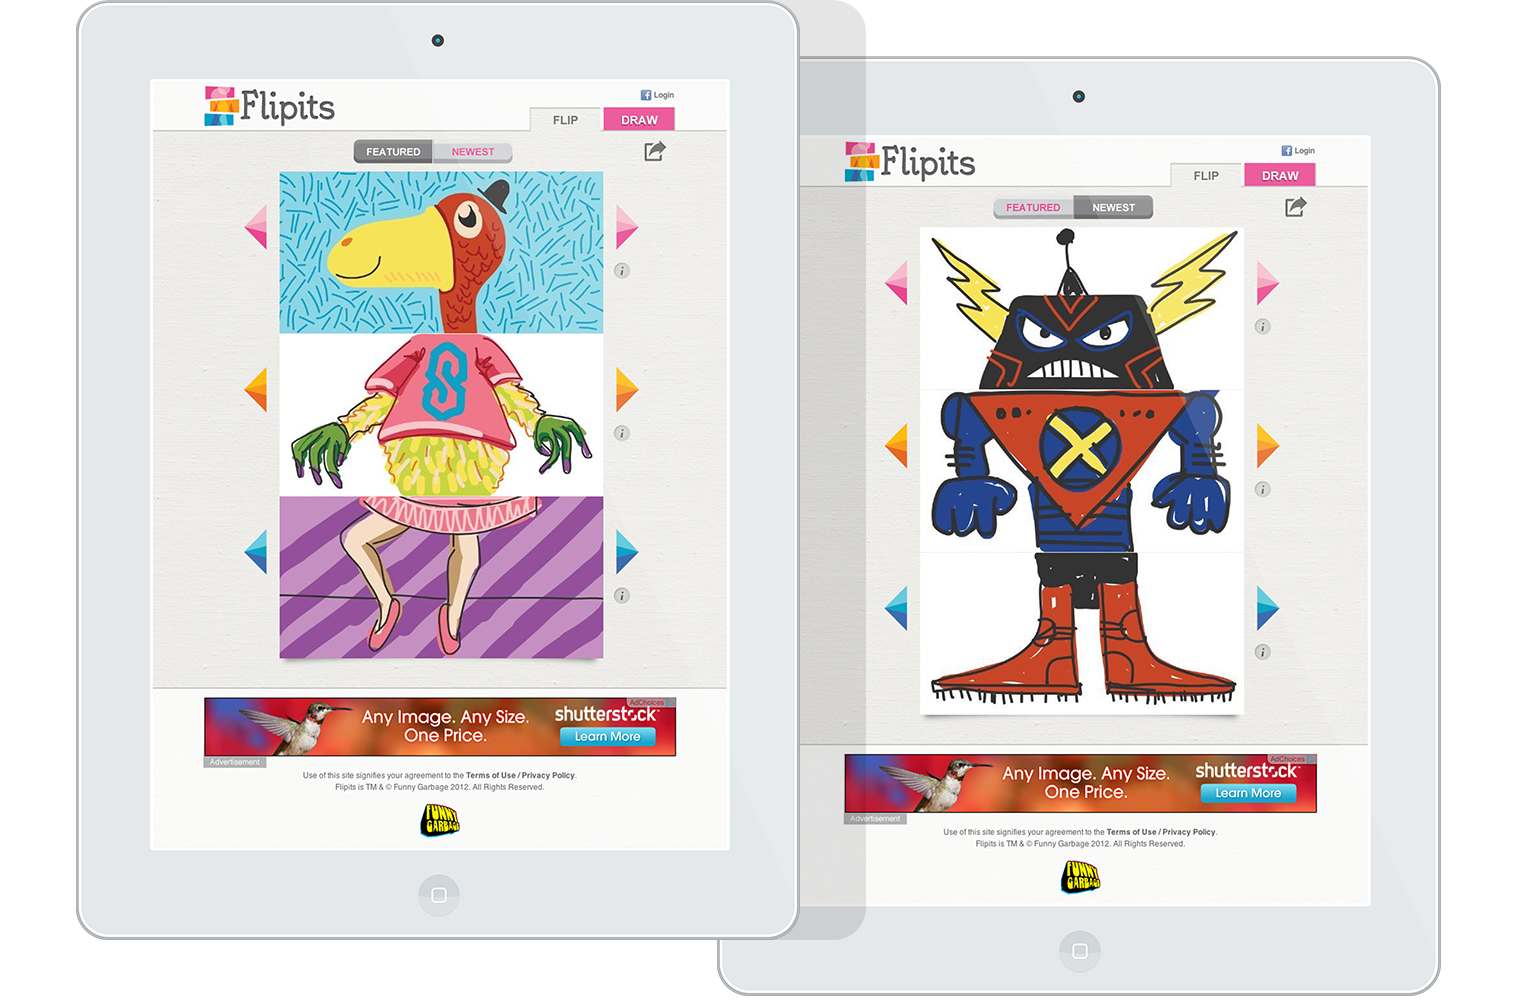 Flip drawing transformation. Draw share play flipits